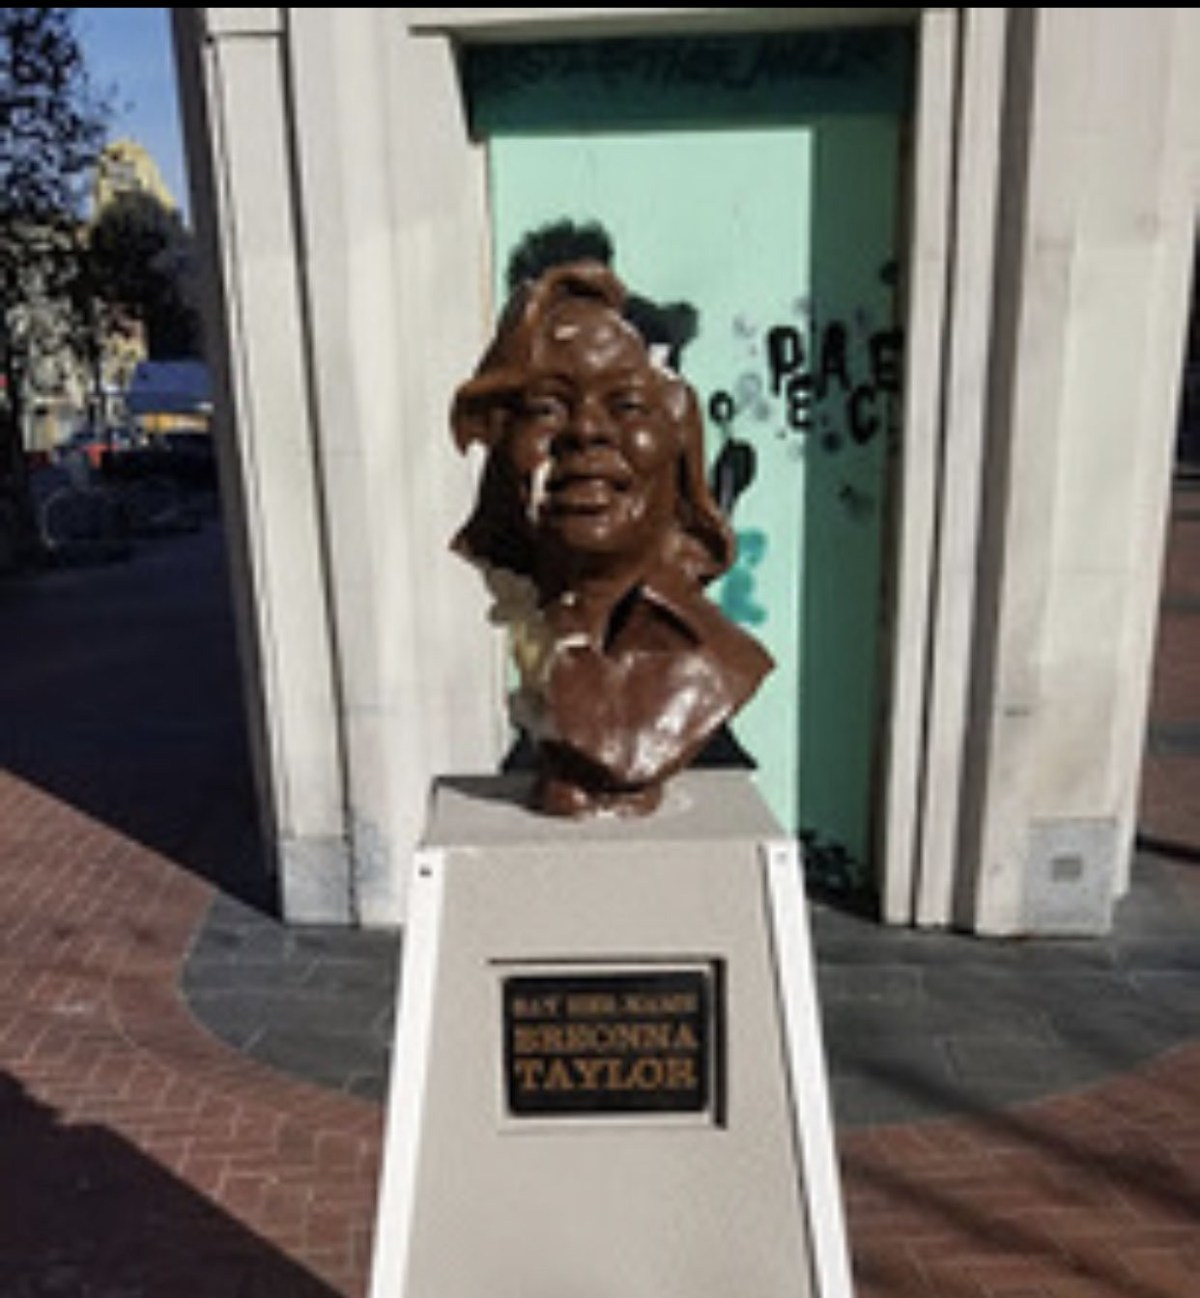 Breonna Taylor's statue vandalized, sculptor calls it 'racist aggression'